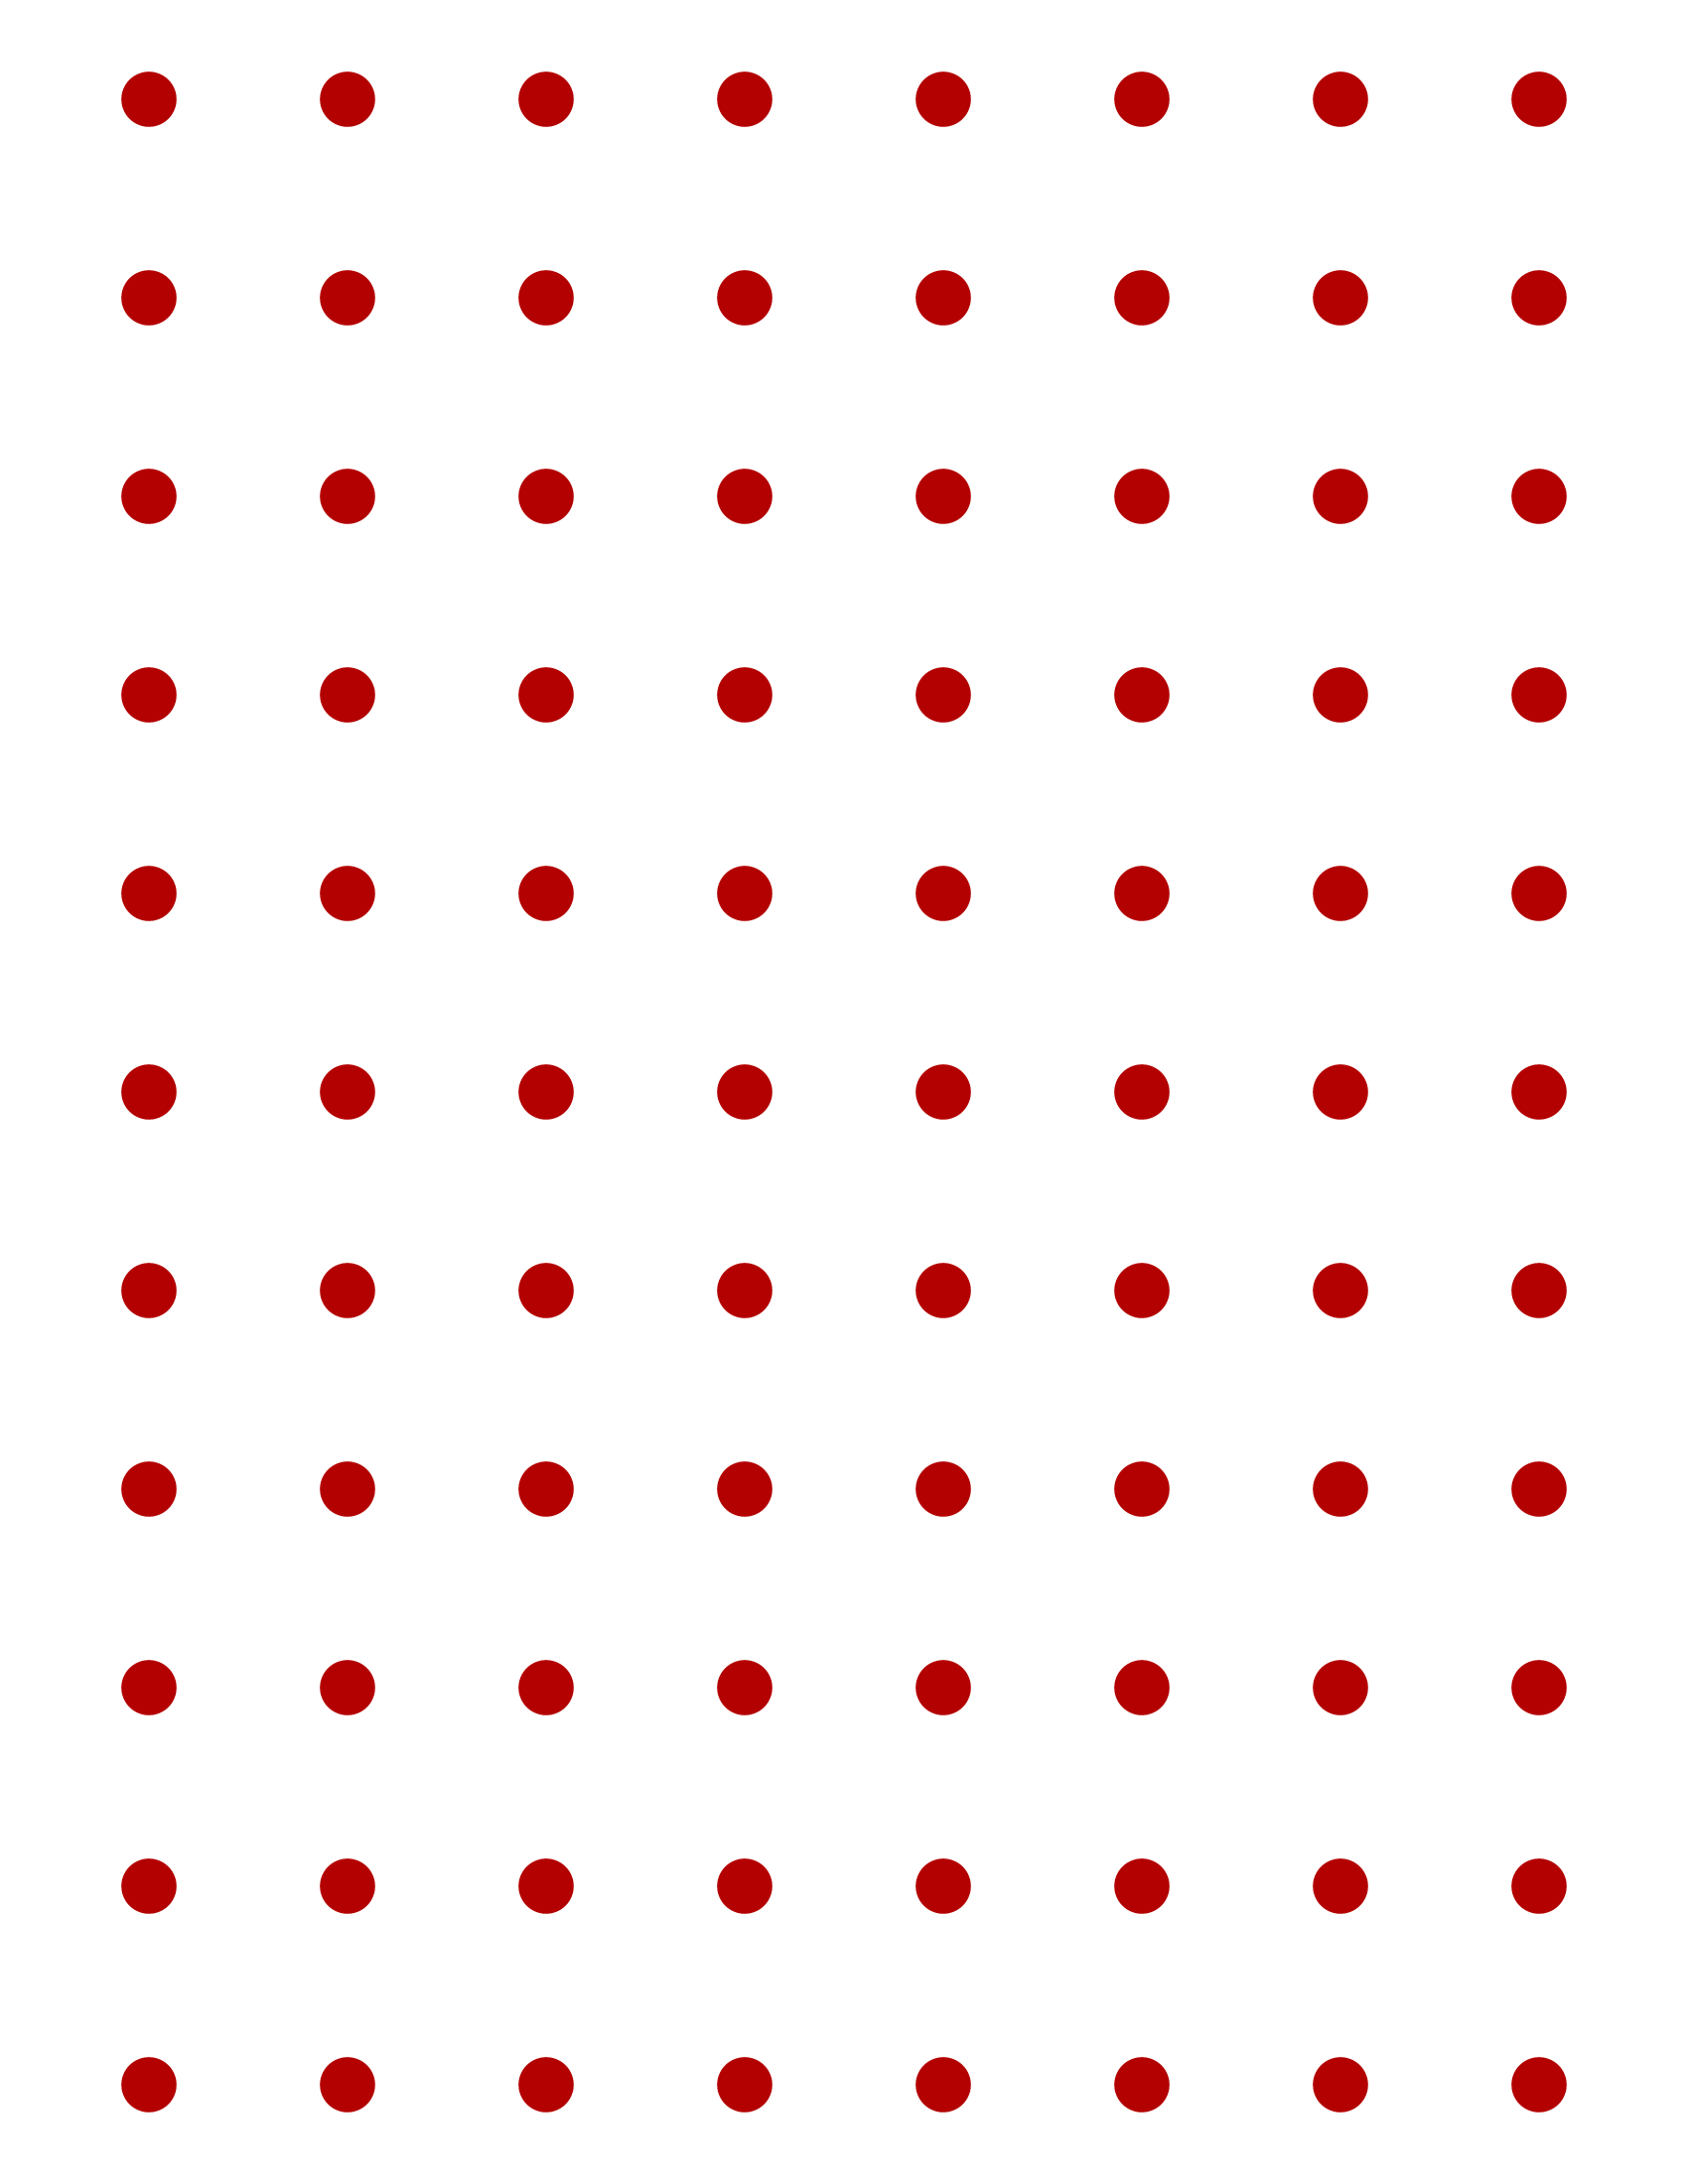 photograph regarding Dot Grid Printable identified as No cost On the internet Graph Paper / Sq. Dots